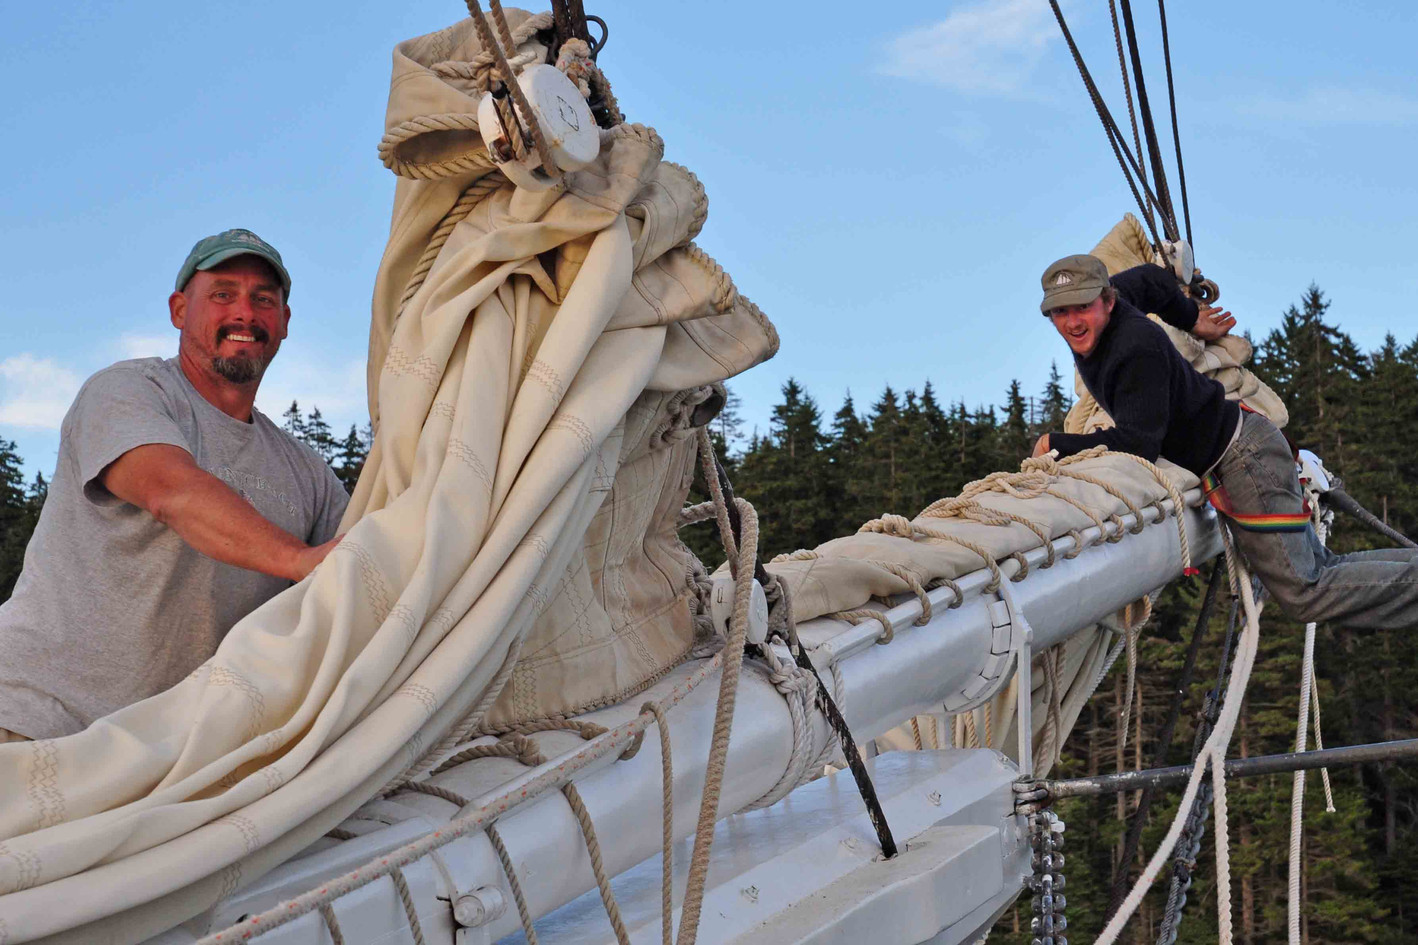 Furling the headsails after a beatiful day of sailing! Photo: Bill Carelton